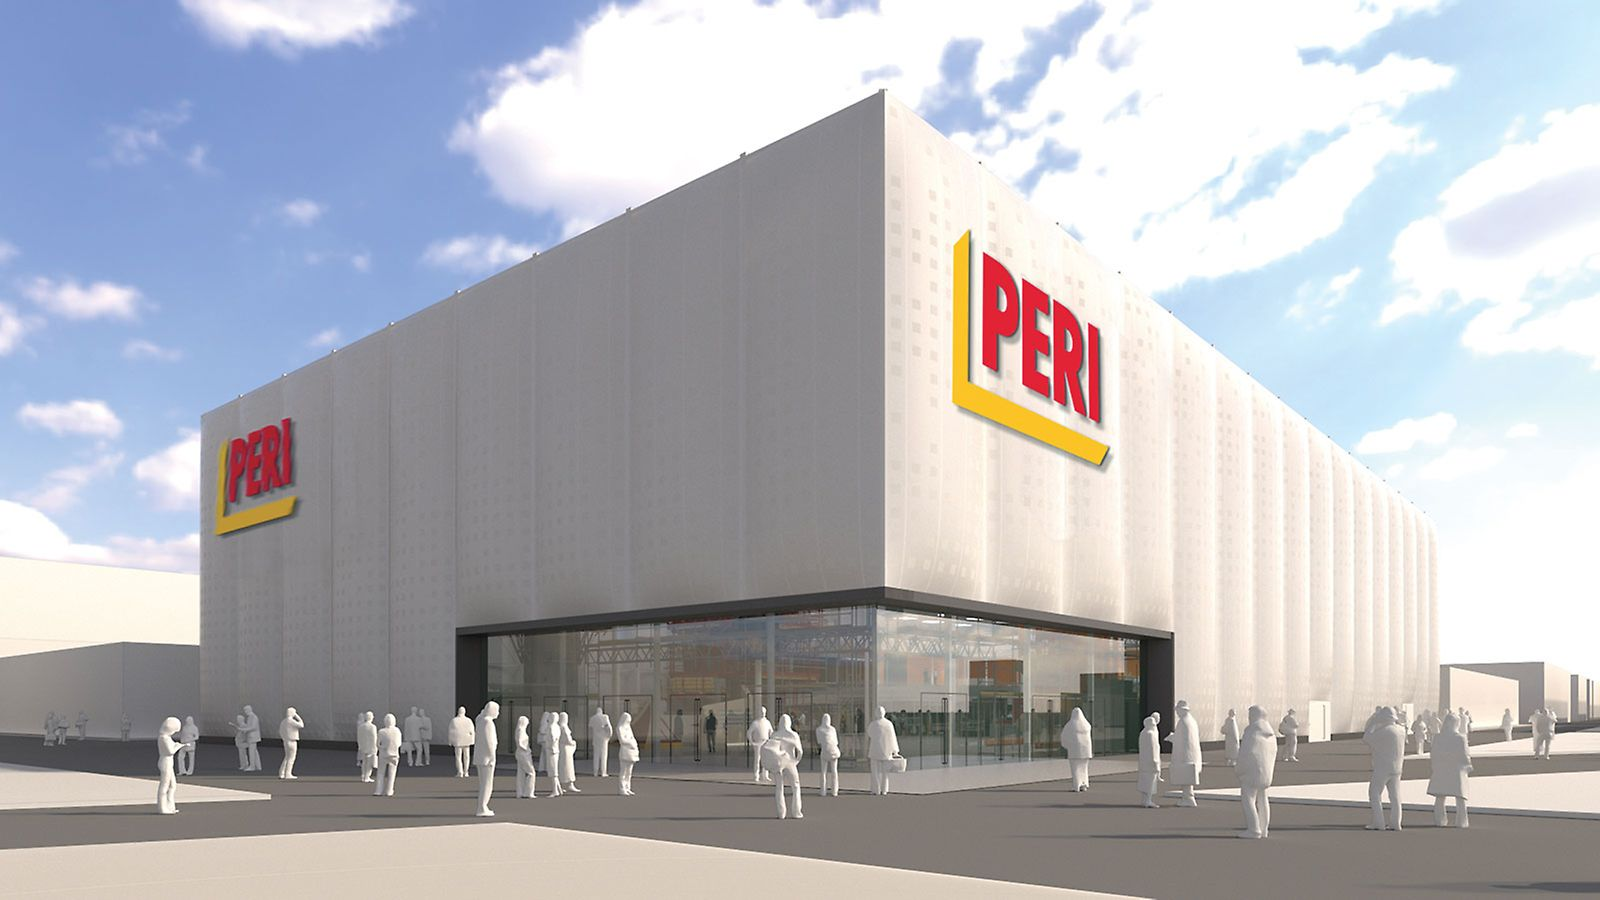 Design of the PERI exhibition hall at bauma 2019